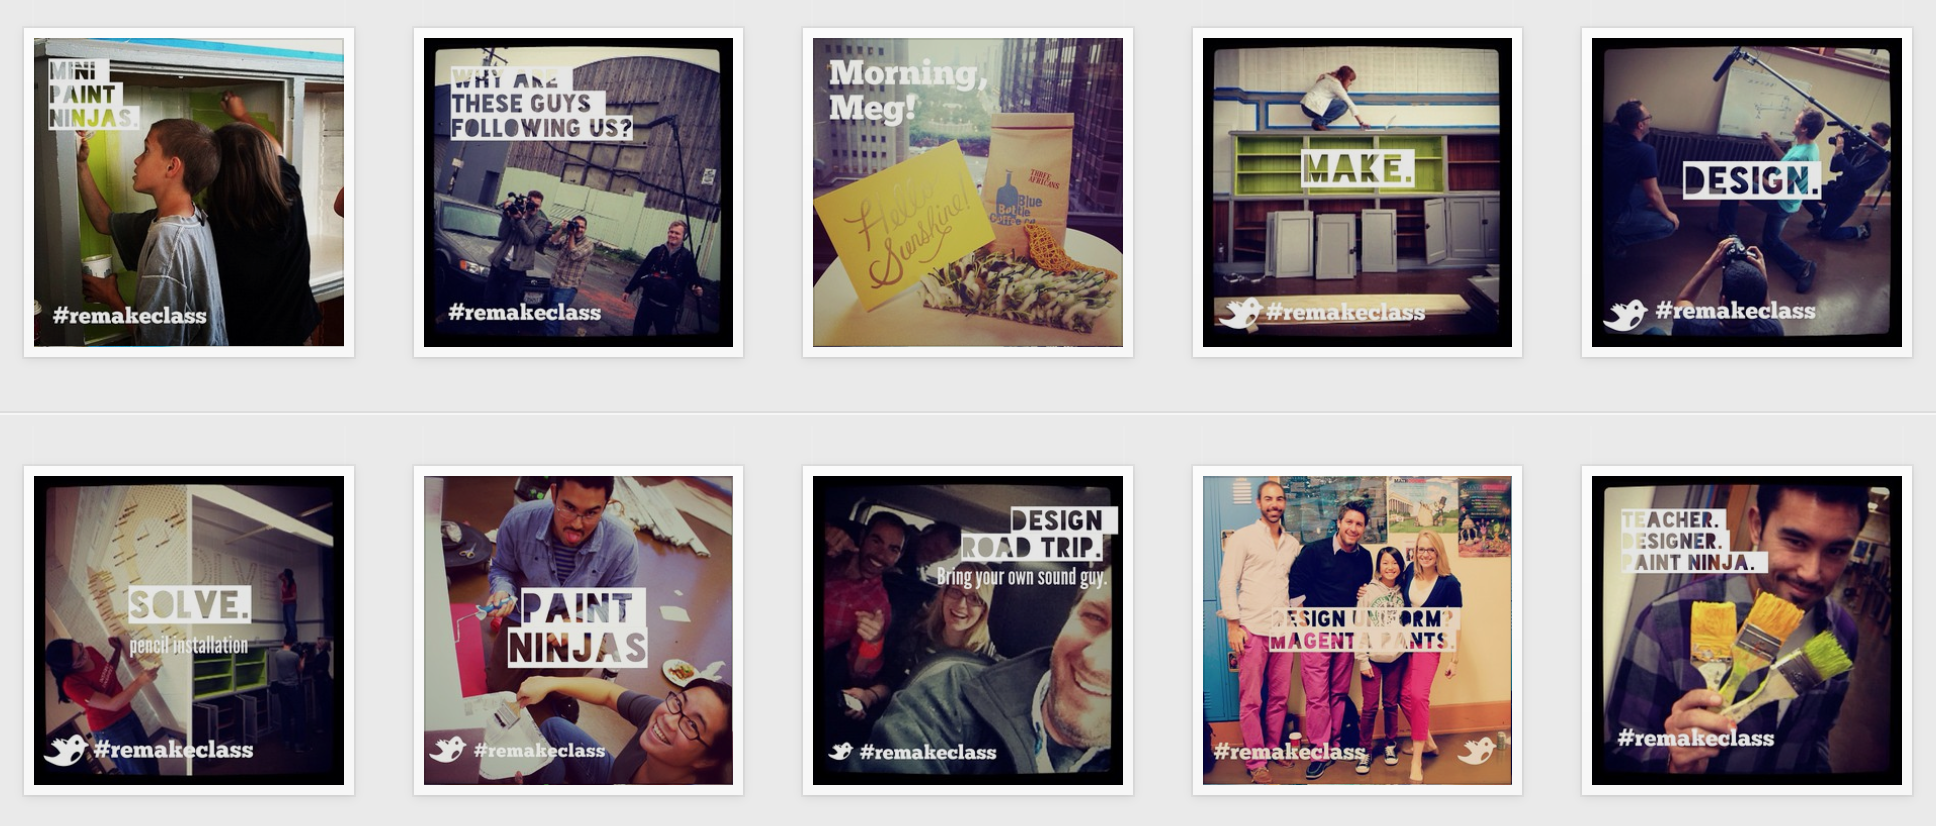 A glimpse into the Instagram campaign after the series aired on Edutopia